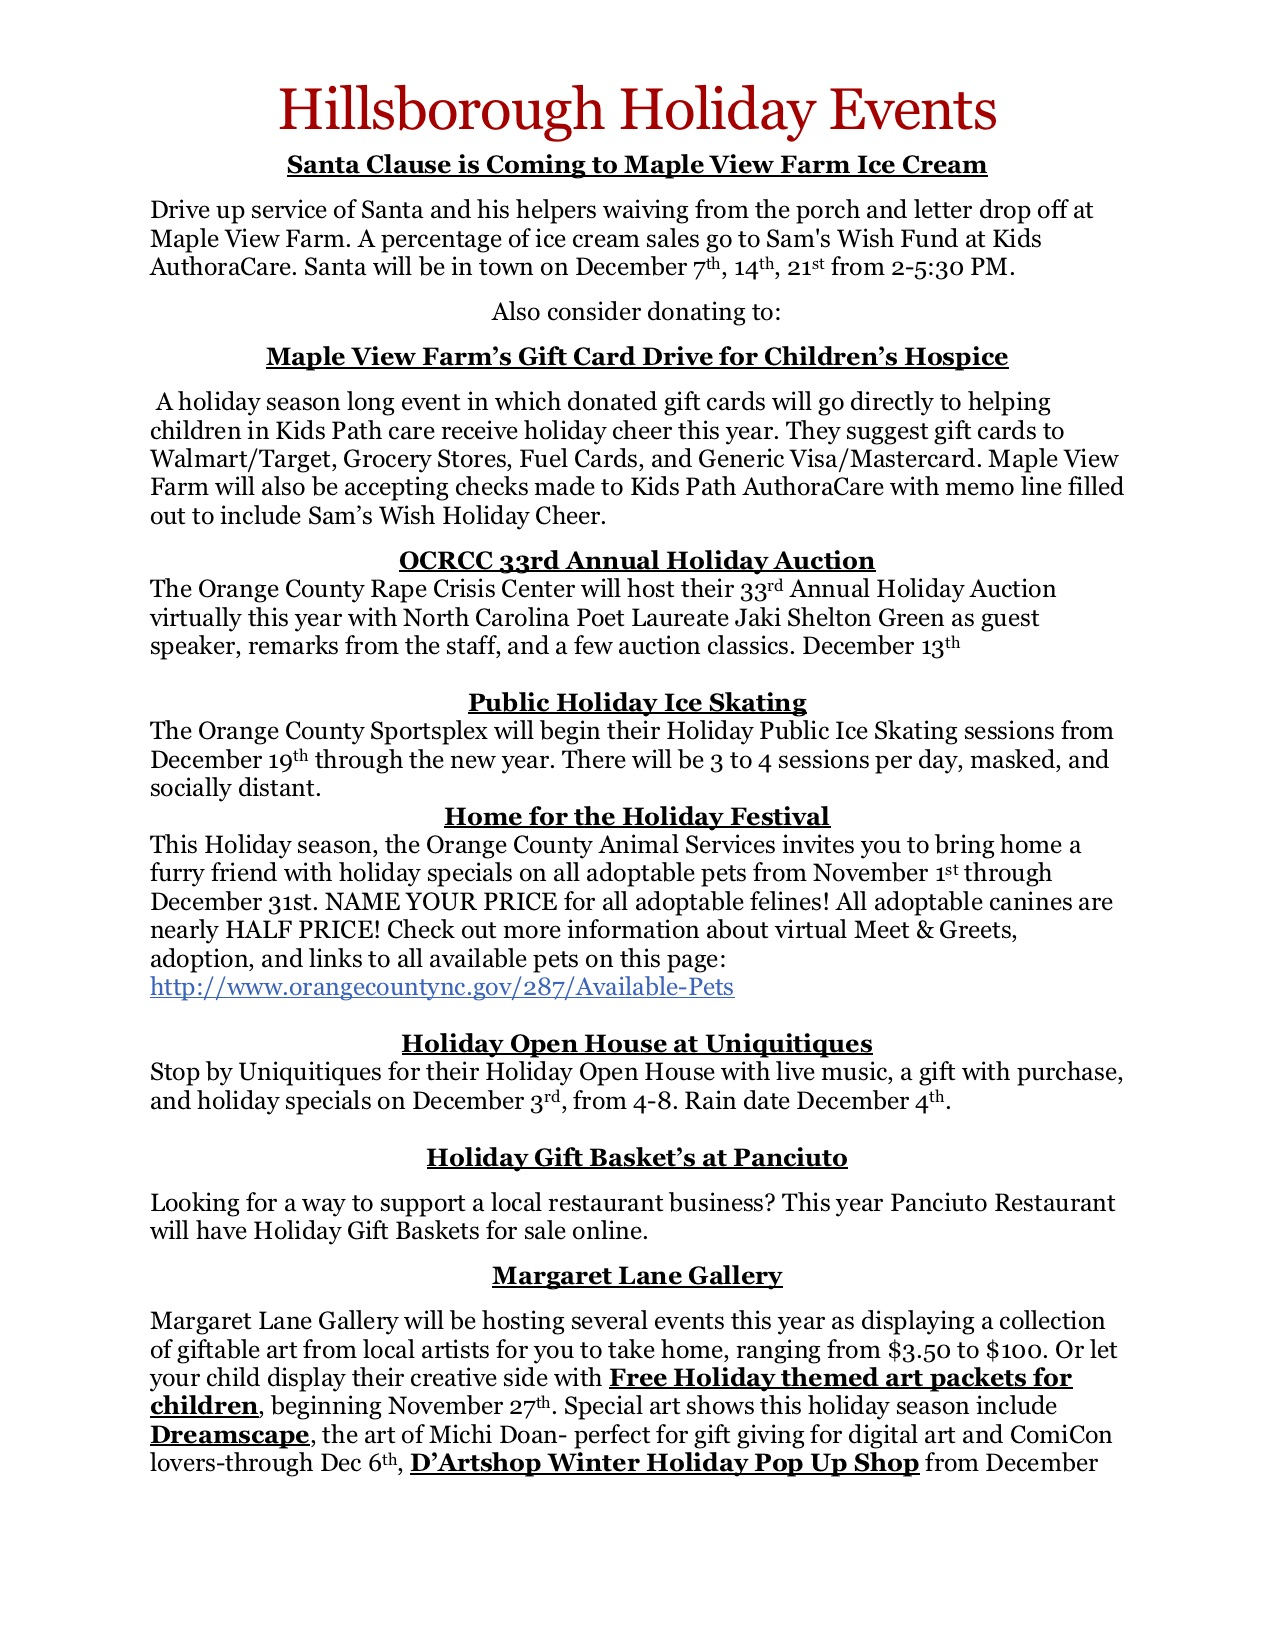 page 1 events